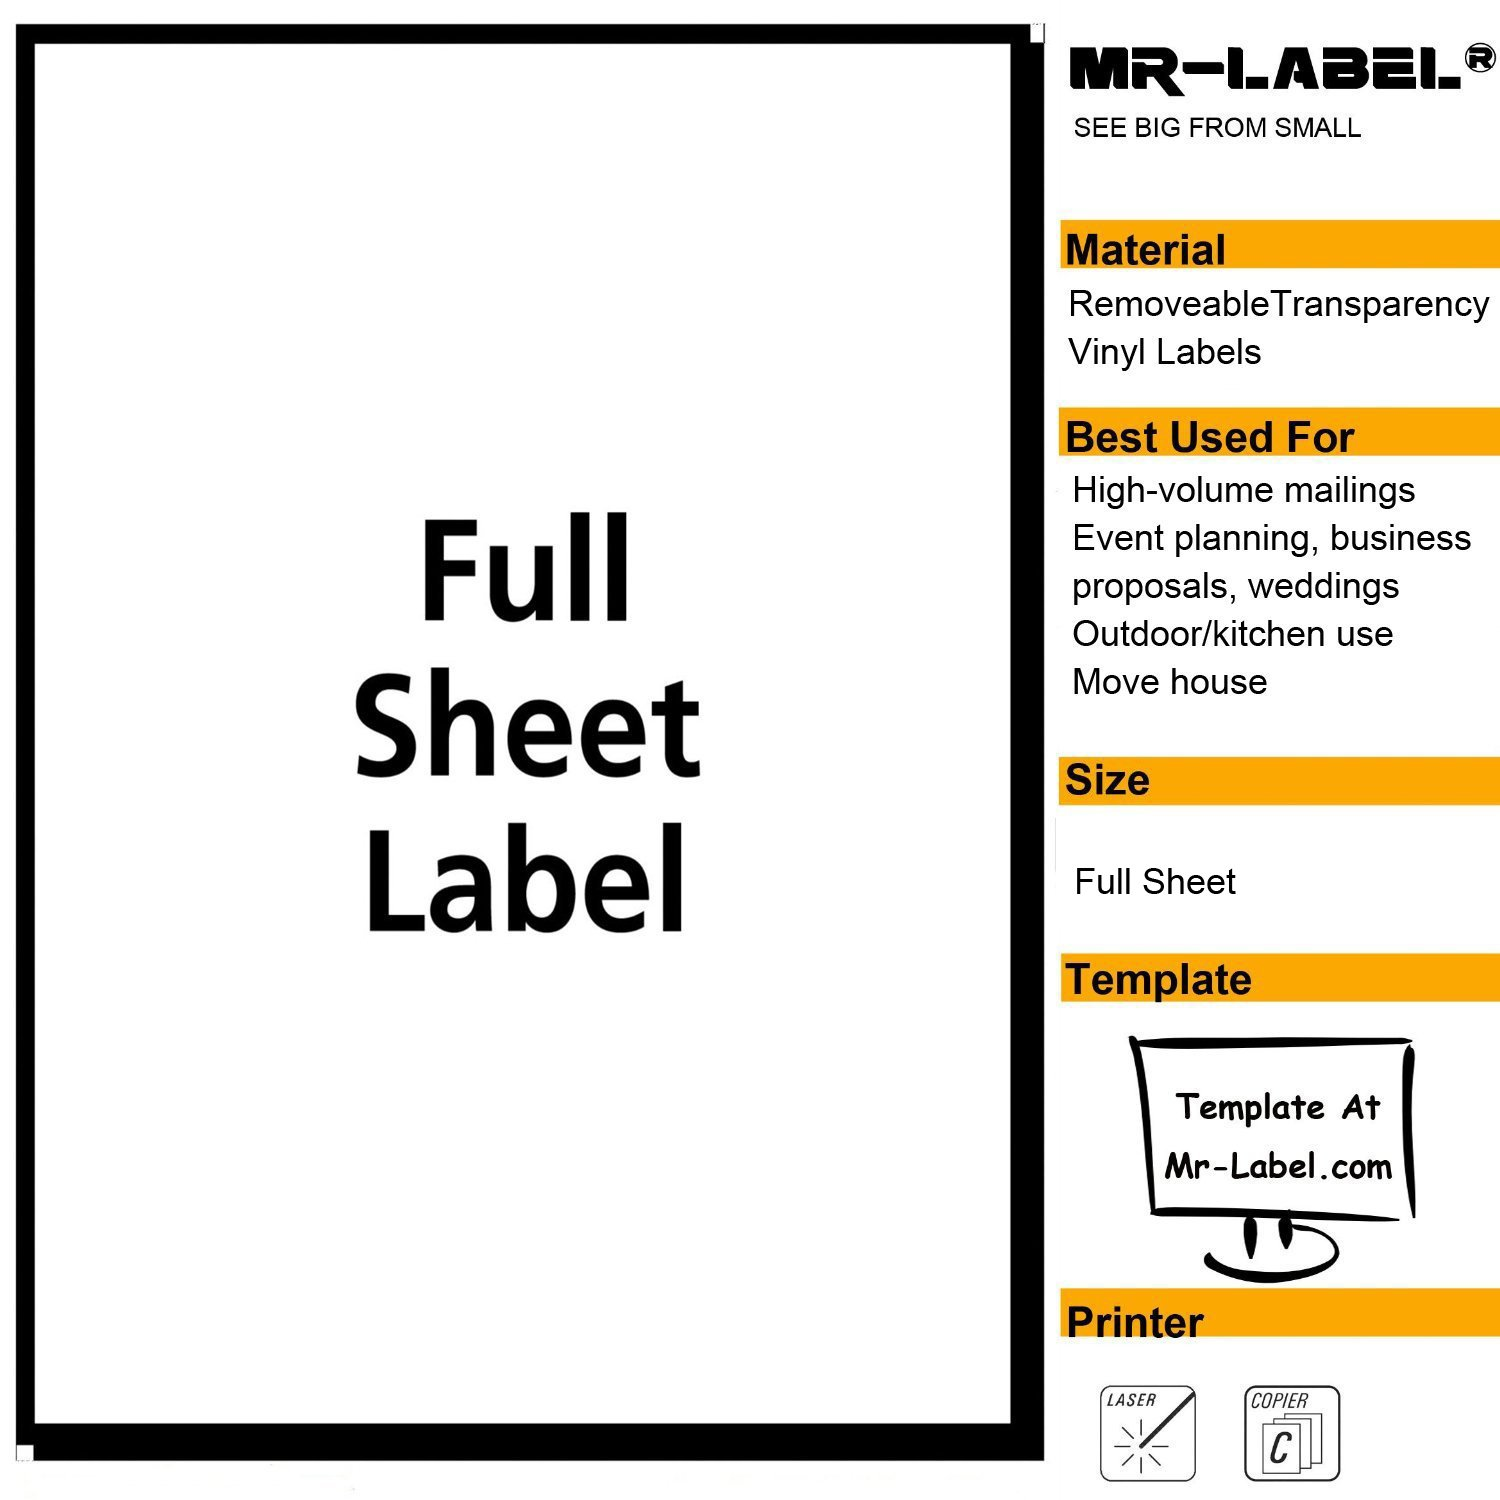 Amazon com mr label clear matte full letter sheet removable adhesive labels transparent tear resistant waterproof stickers for kitchen use